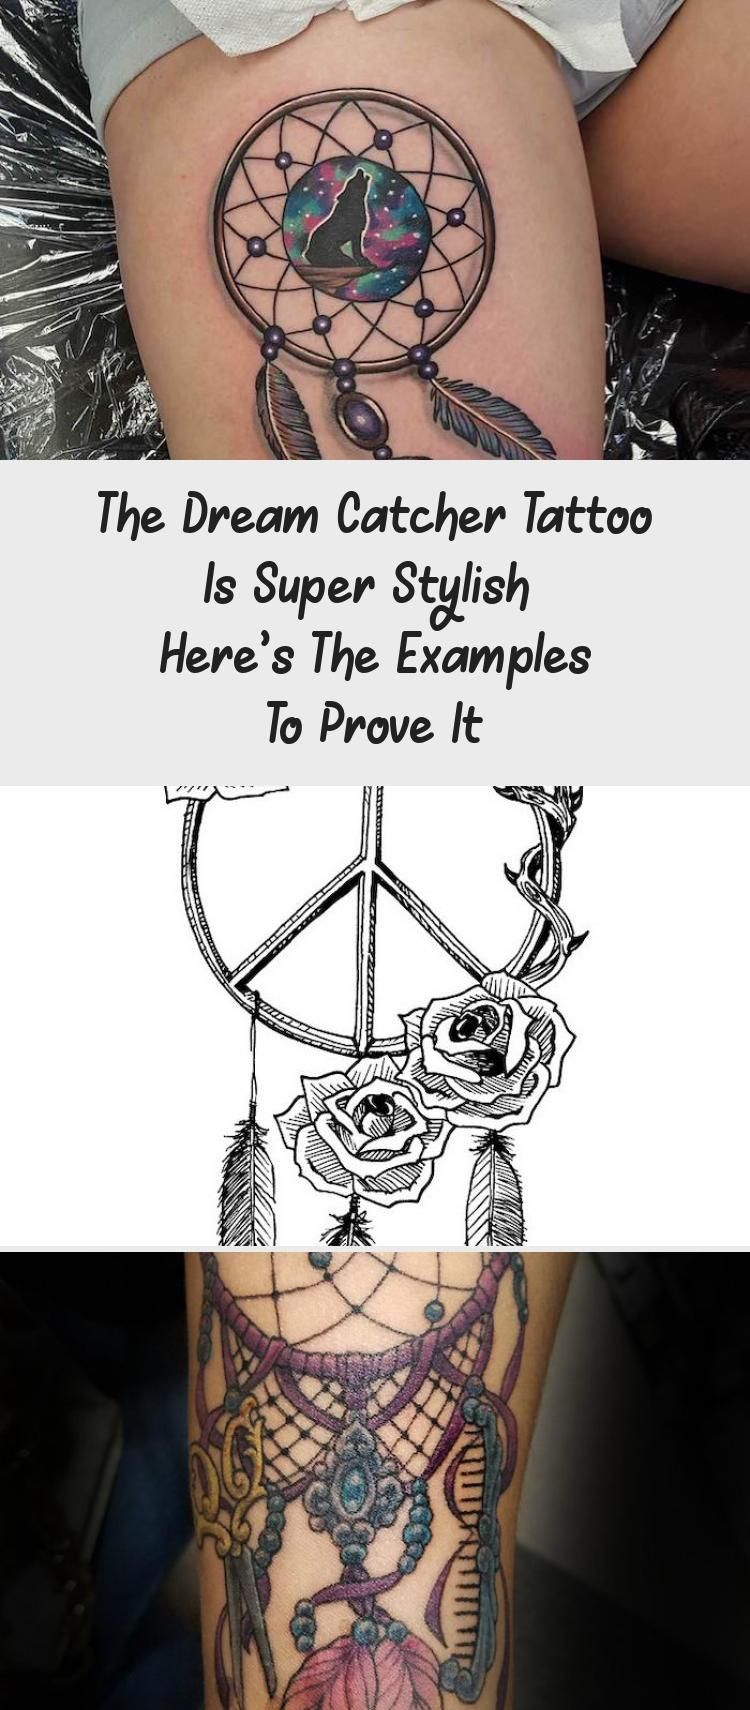 There are so many different tattoo designs out there, but